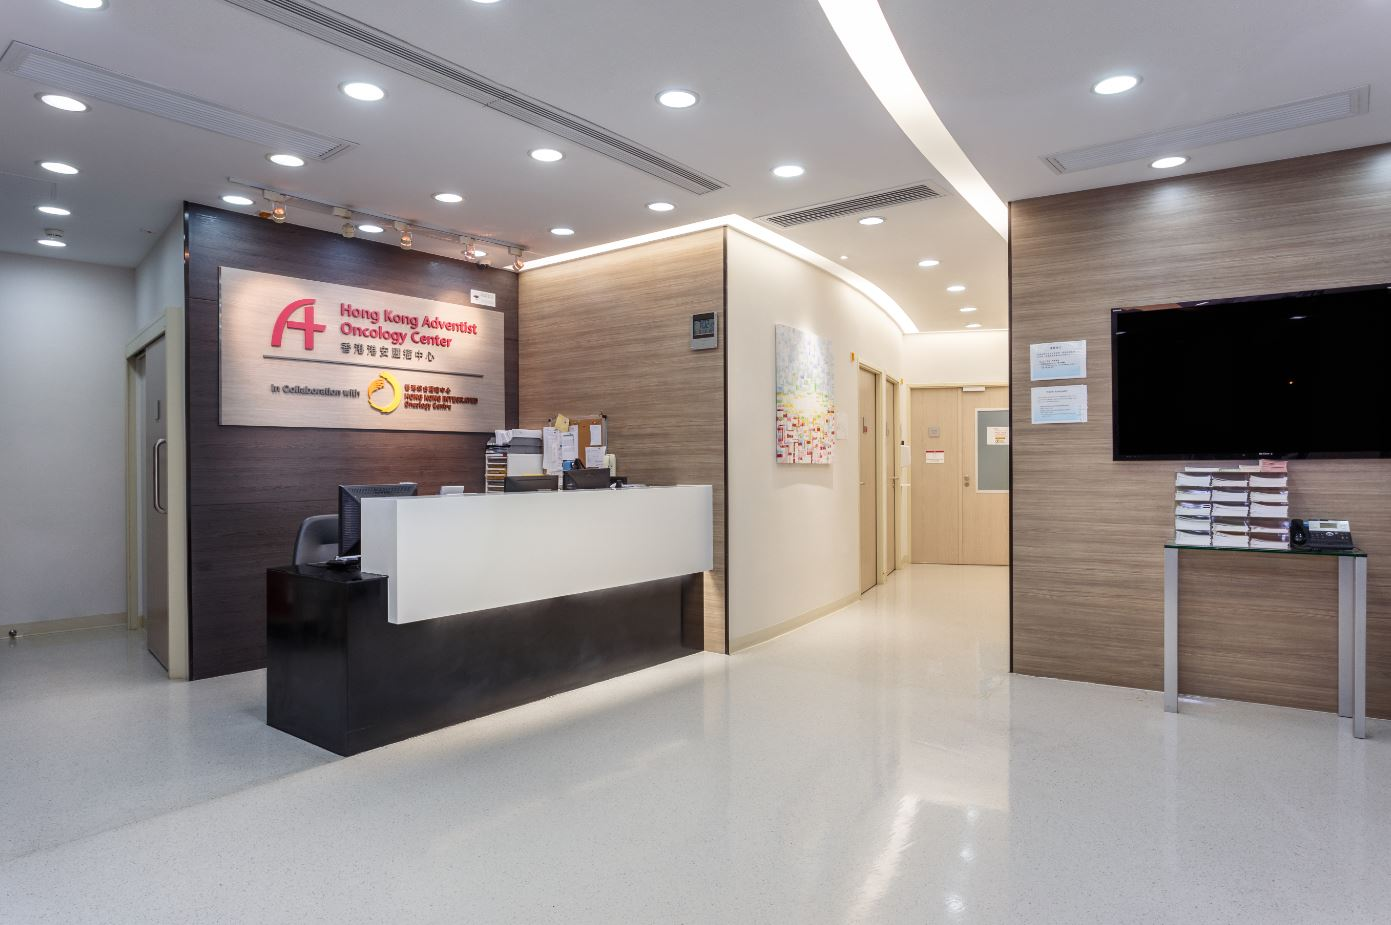 Adventist Hospital Oncology Center